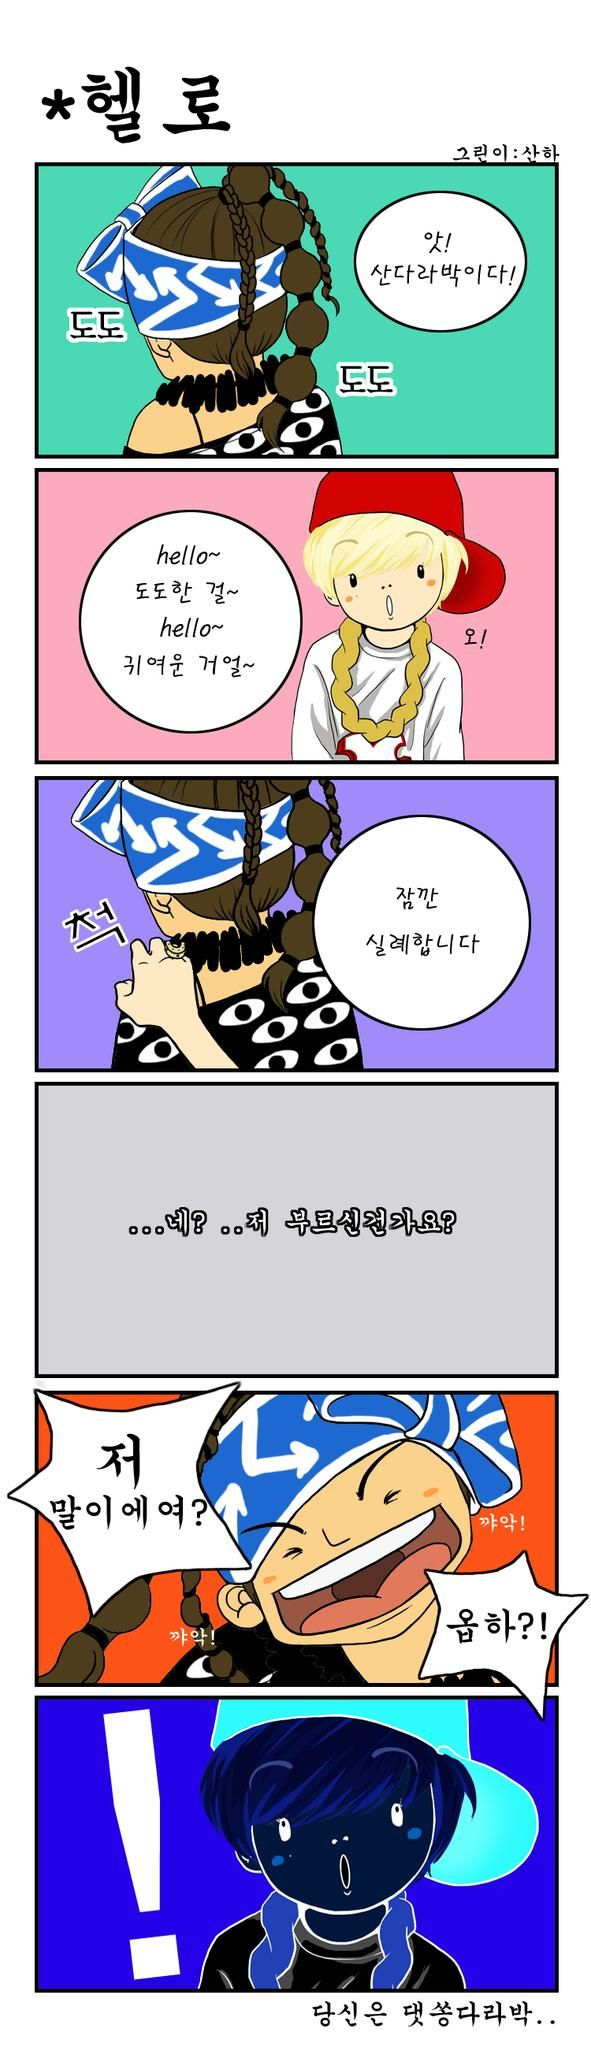 """The """"Hello"""" Comic Strip made by a K-fan 6 years ago about #Daragon with a twist  Translation anyone? #tbt #otp5ever"""